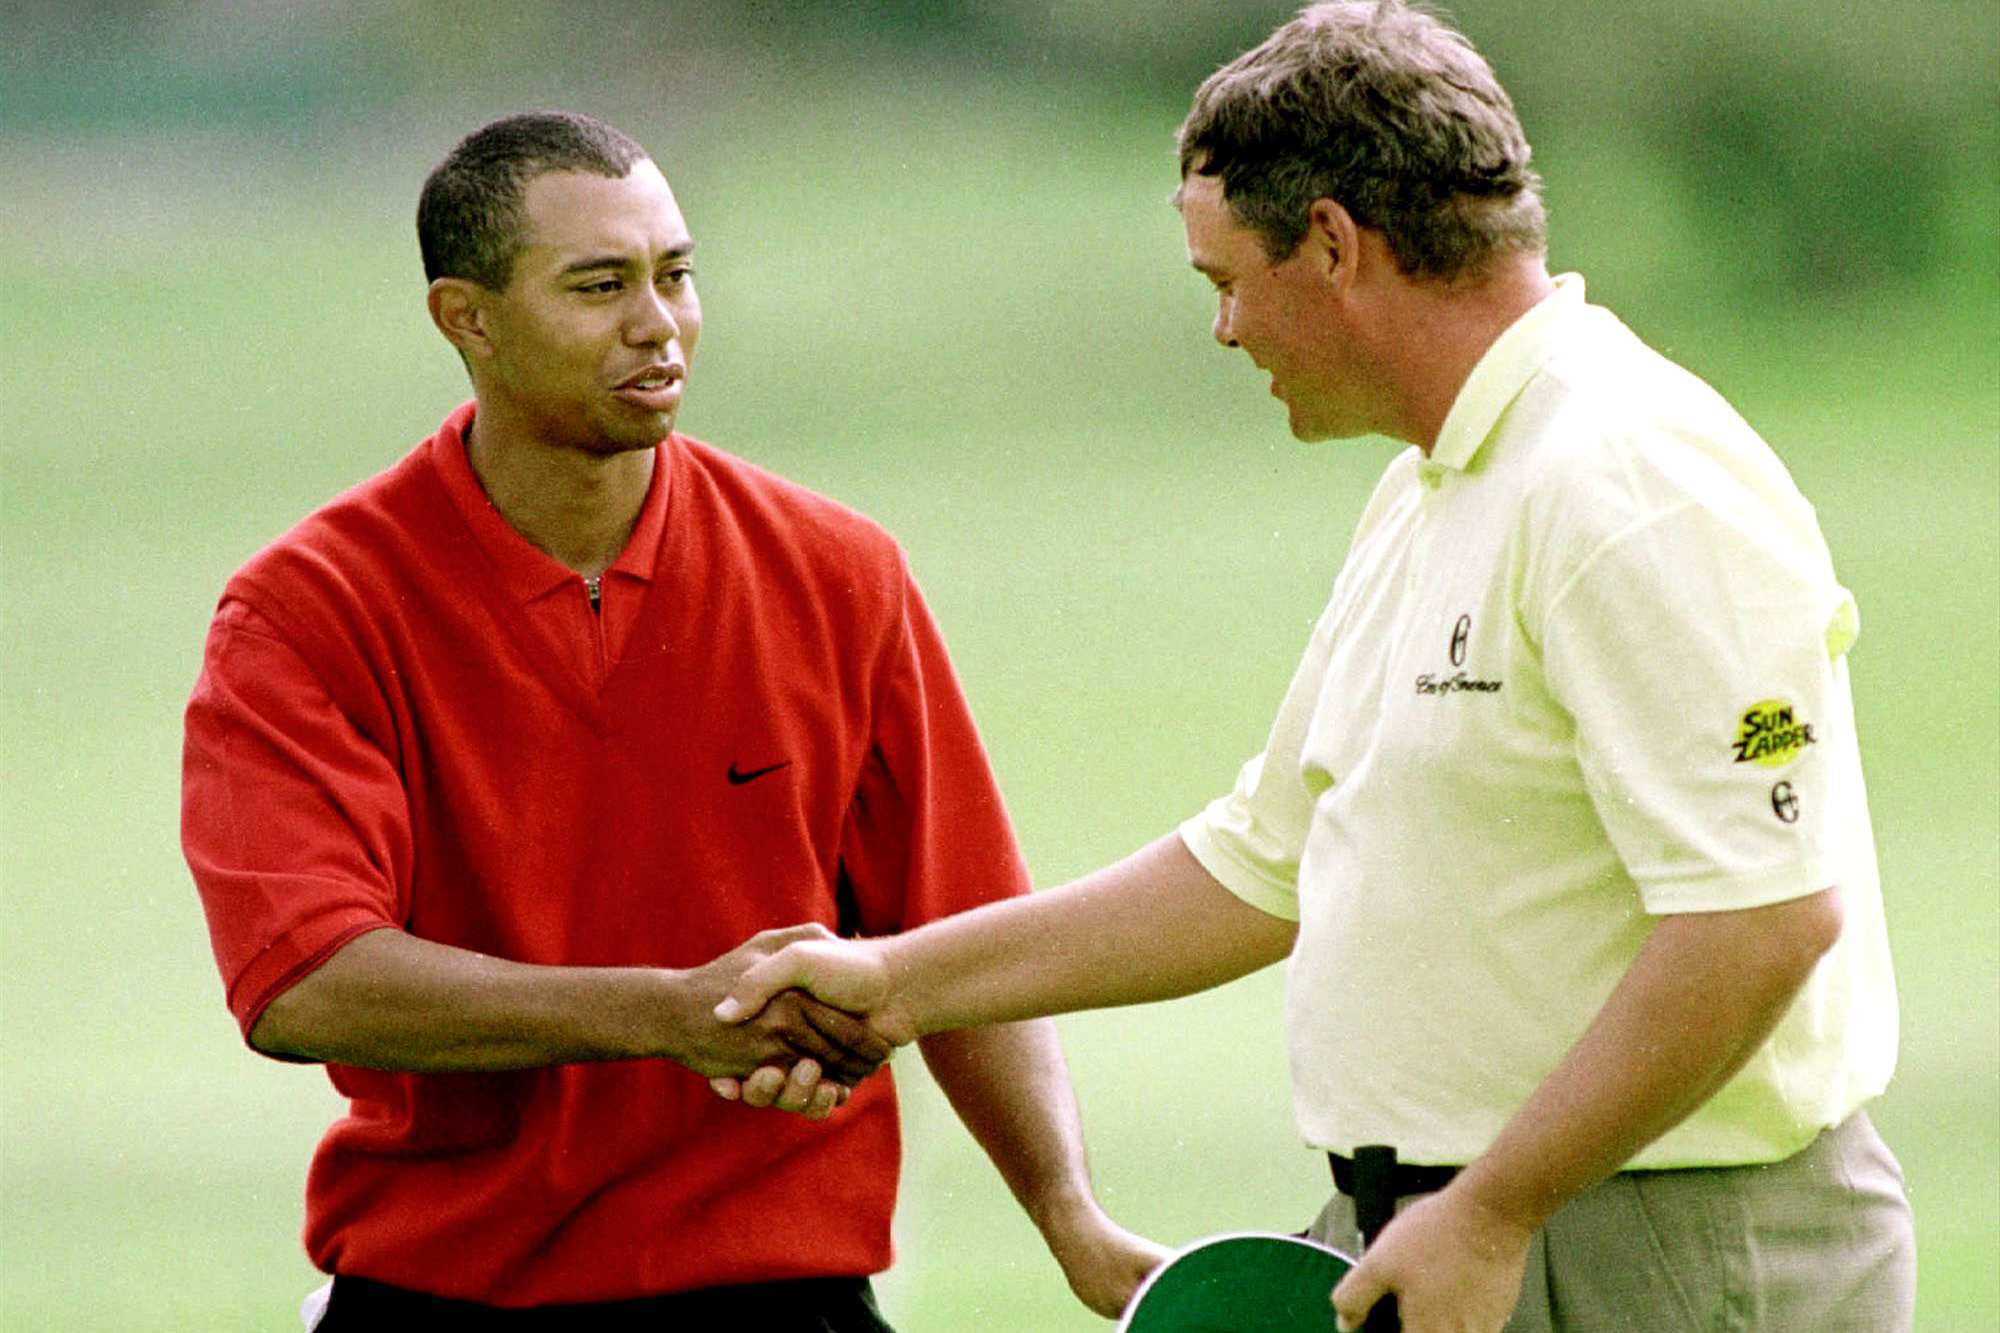 One of Clarke's finest moments came when he beat Tiger Woods 4&3 in the 36-hole final of the 2000 WGC-Matchplay Championship (Photo: Getty Images)